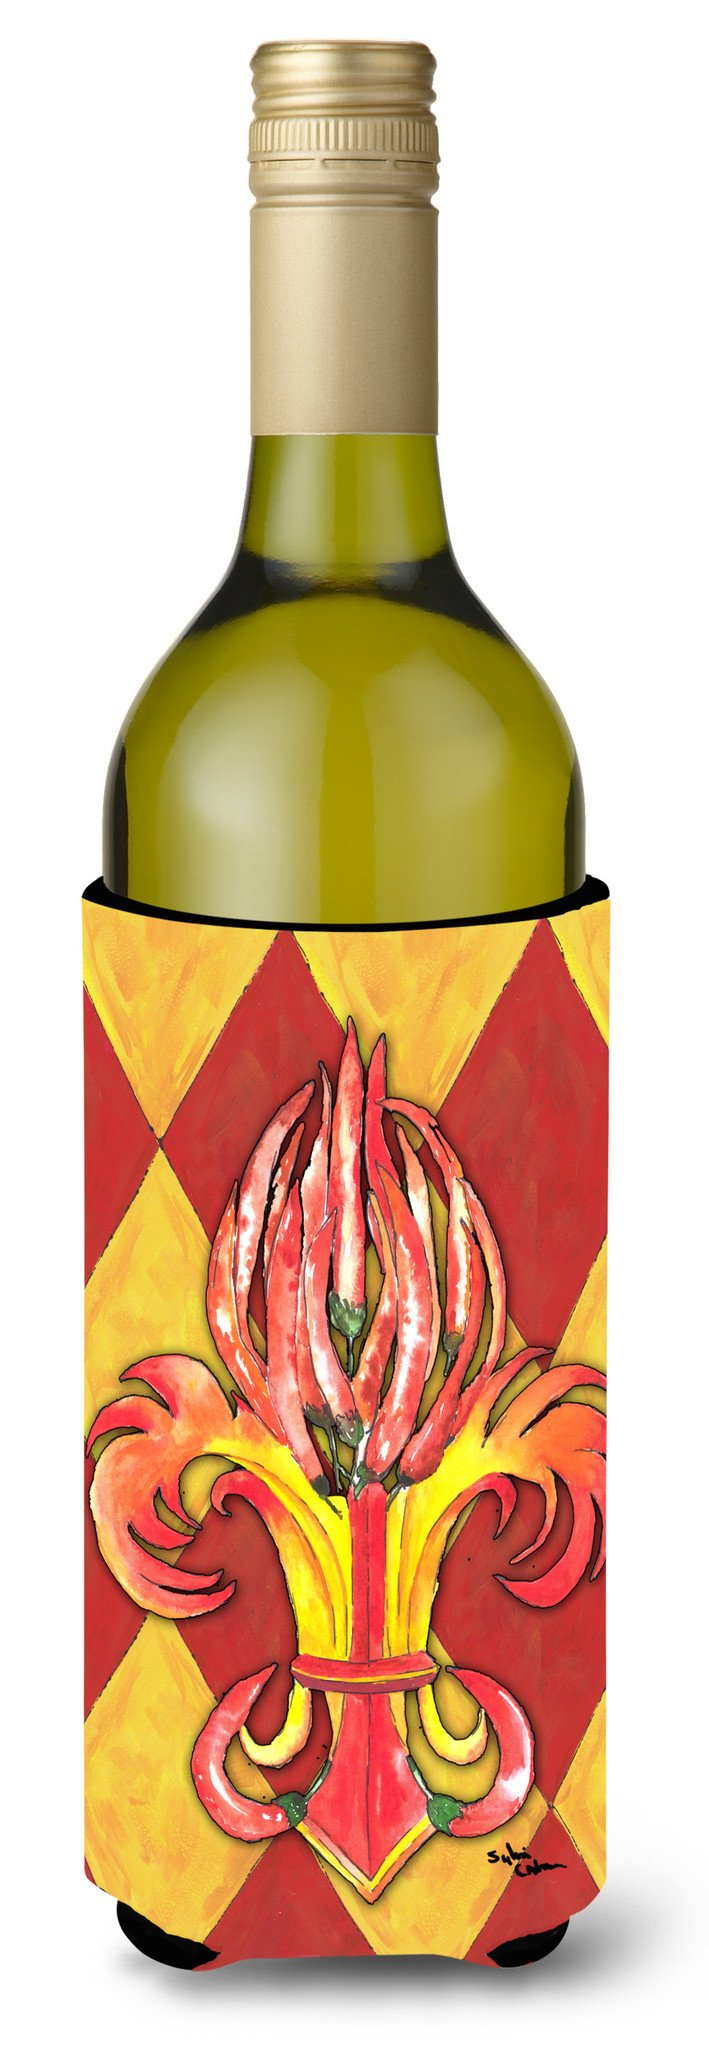 Hot Peppers Fleur de lis Wine Bottle Beverage Insulator Beverage Insulator Hugger by Caroline's Treasures